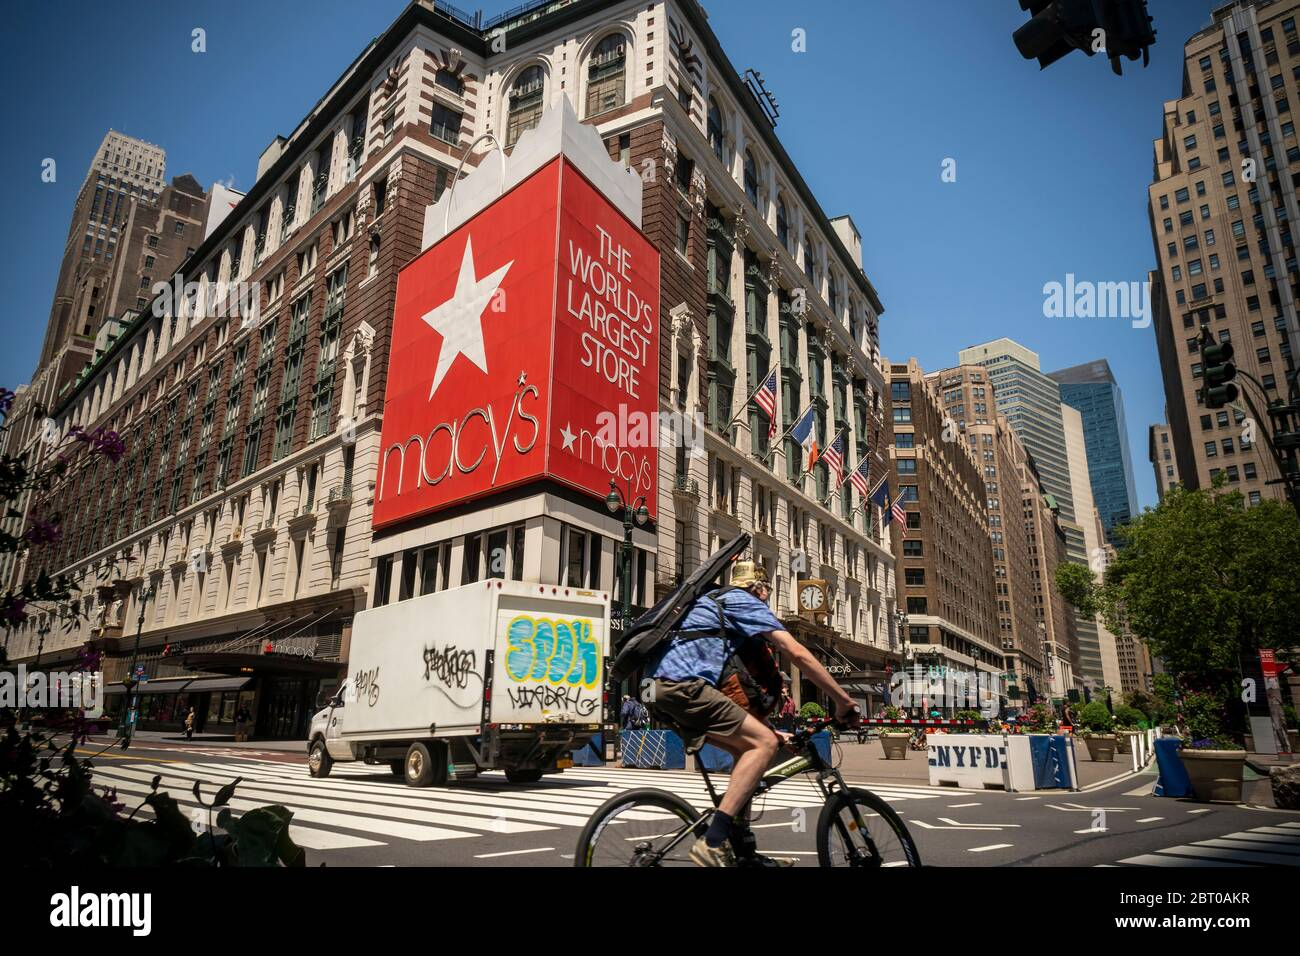 The closed Macy's in Herald Square in New York on Thursday, May 21, 2020. Macy's is reported to be in talks with New York City about opening up their flagship Herald Square store for curbside pickup. (© Richard B. Levine) Stock Photo